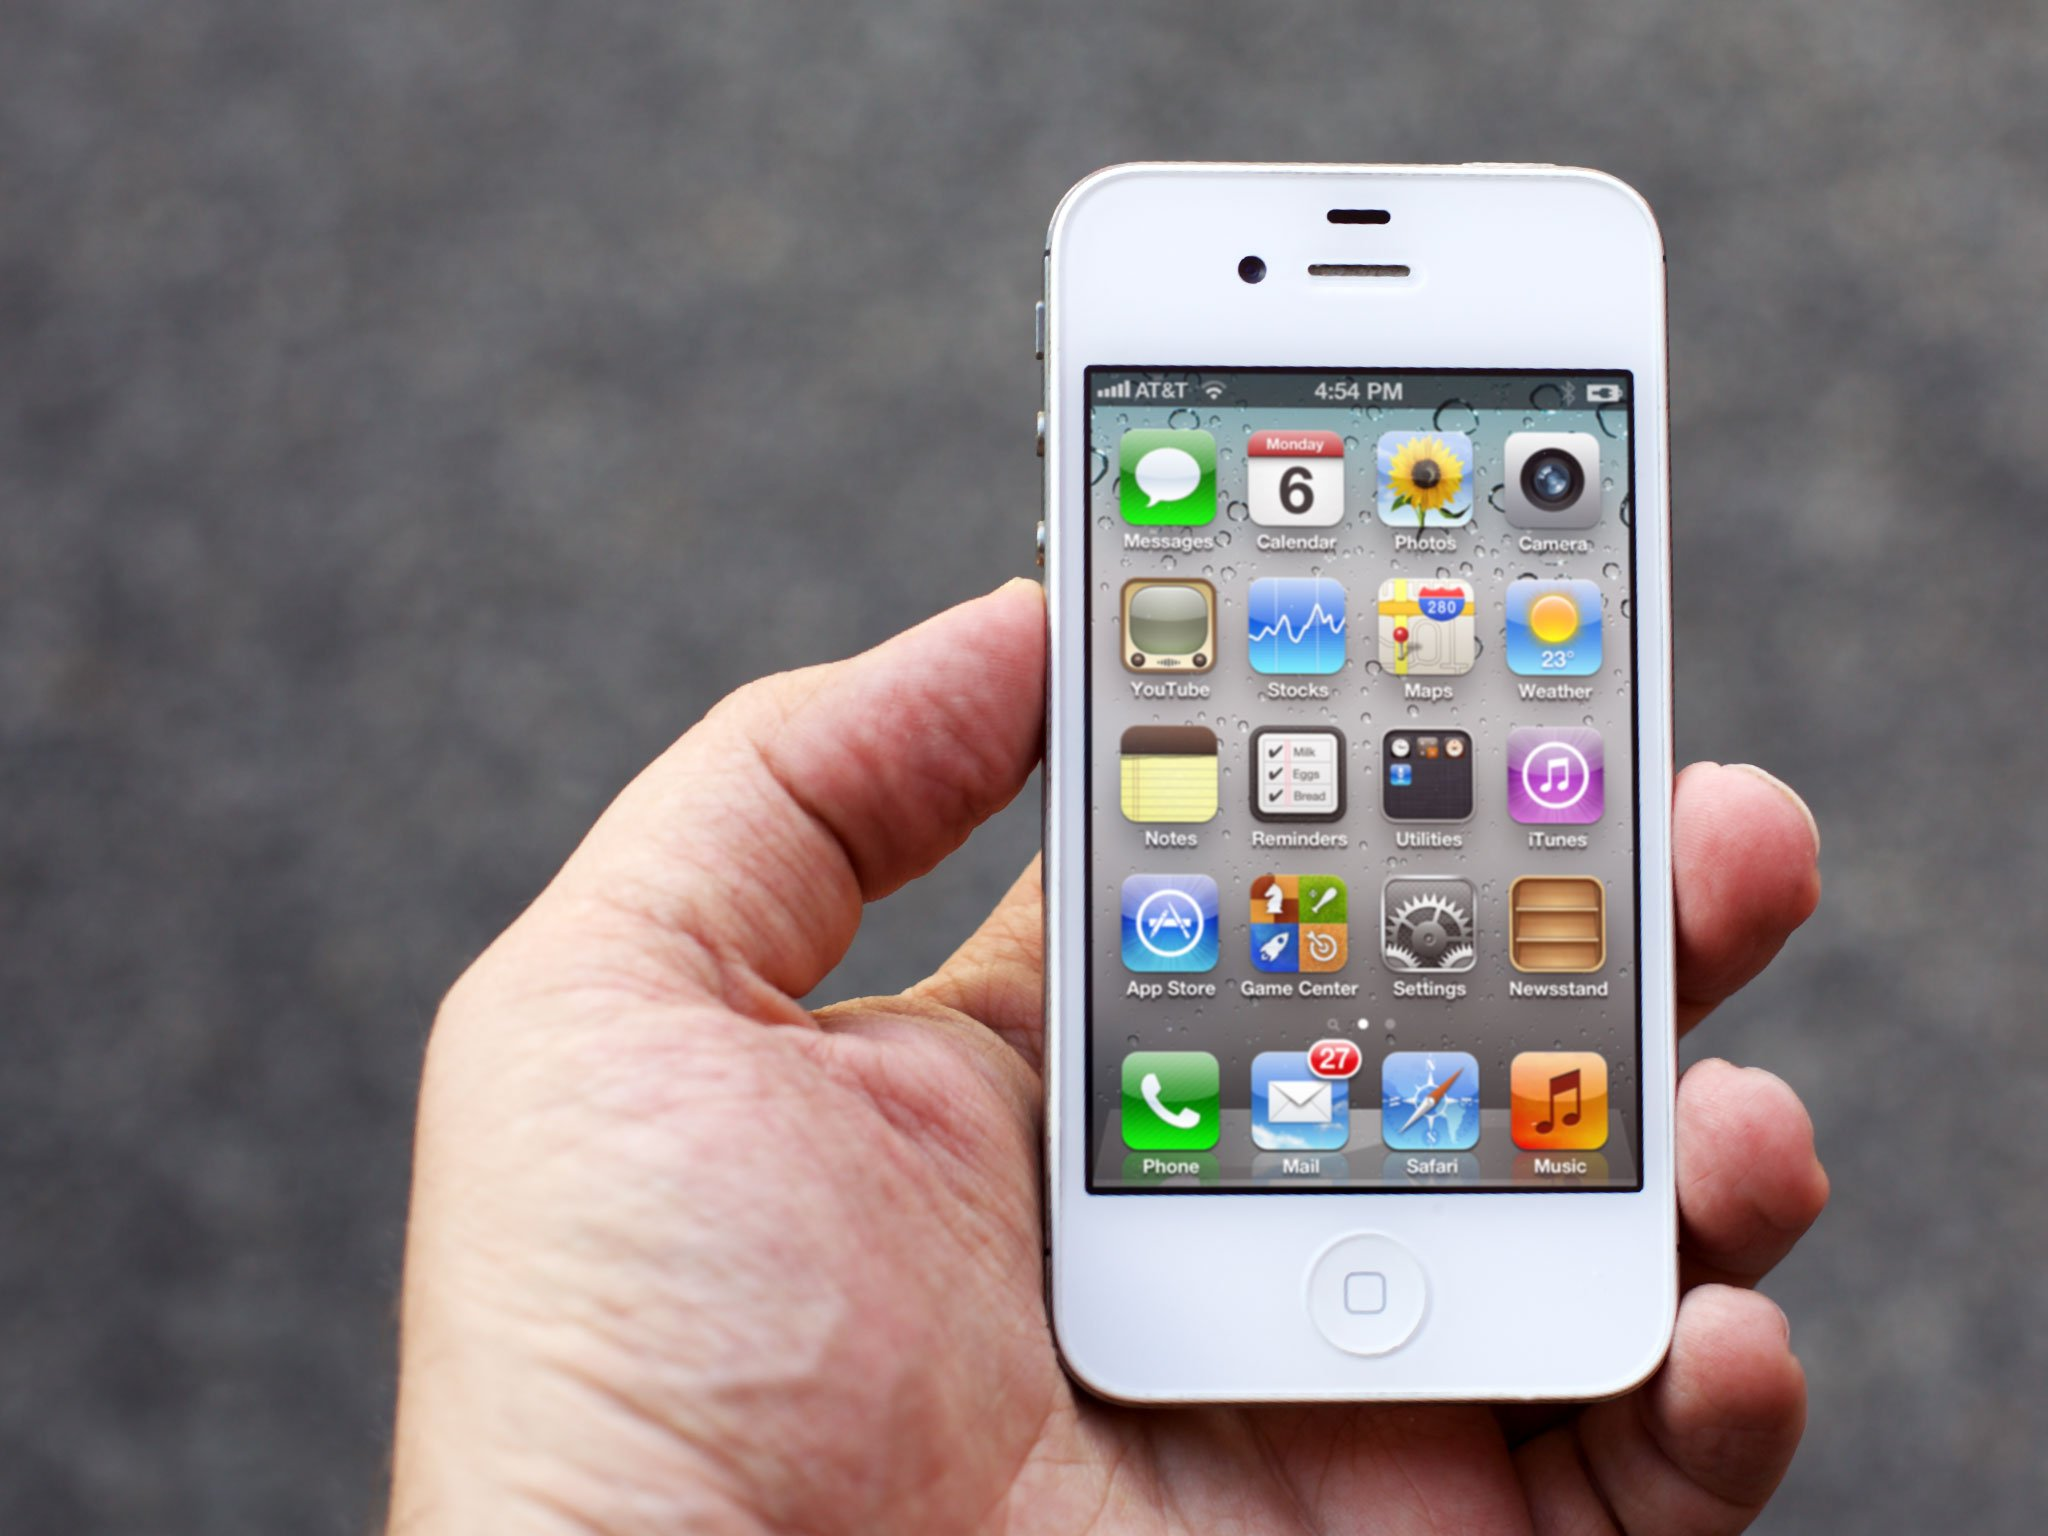 Iphone 4s History Of Iphone 4s The Most Amazing Iphone Yet Imore